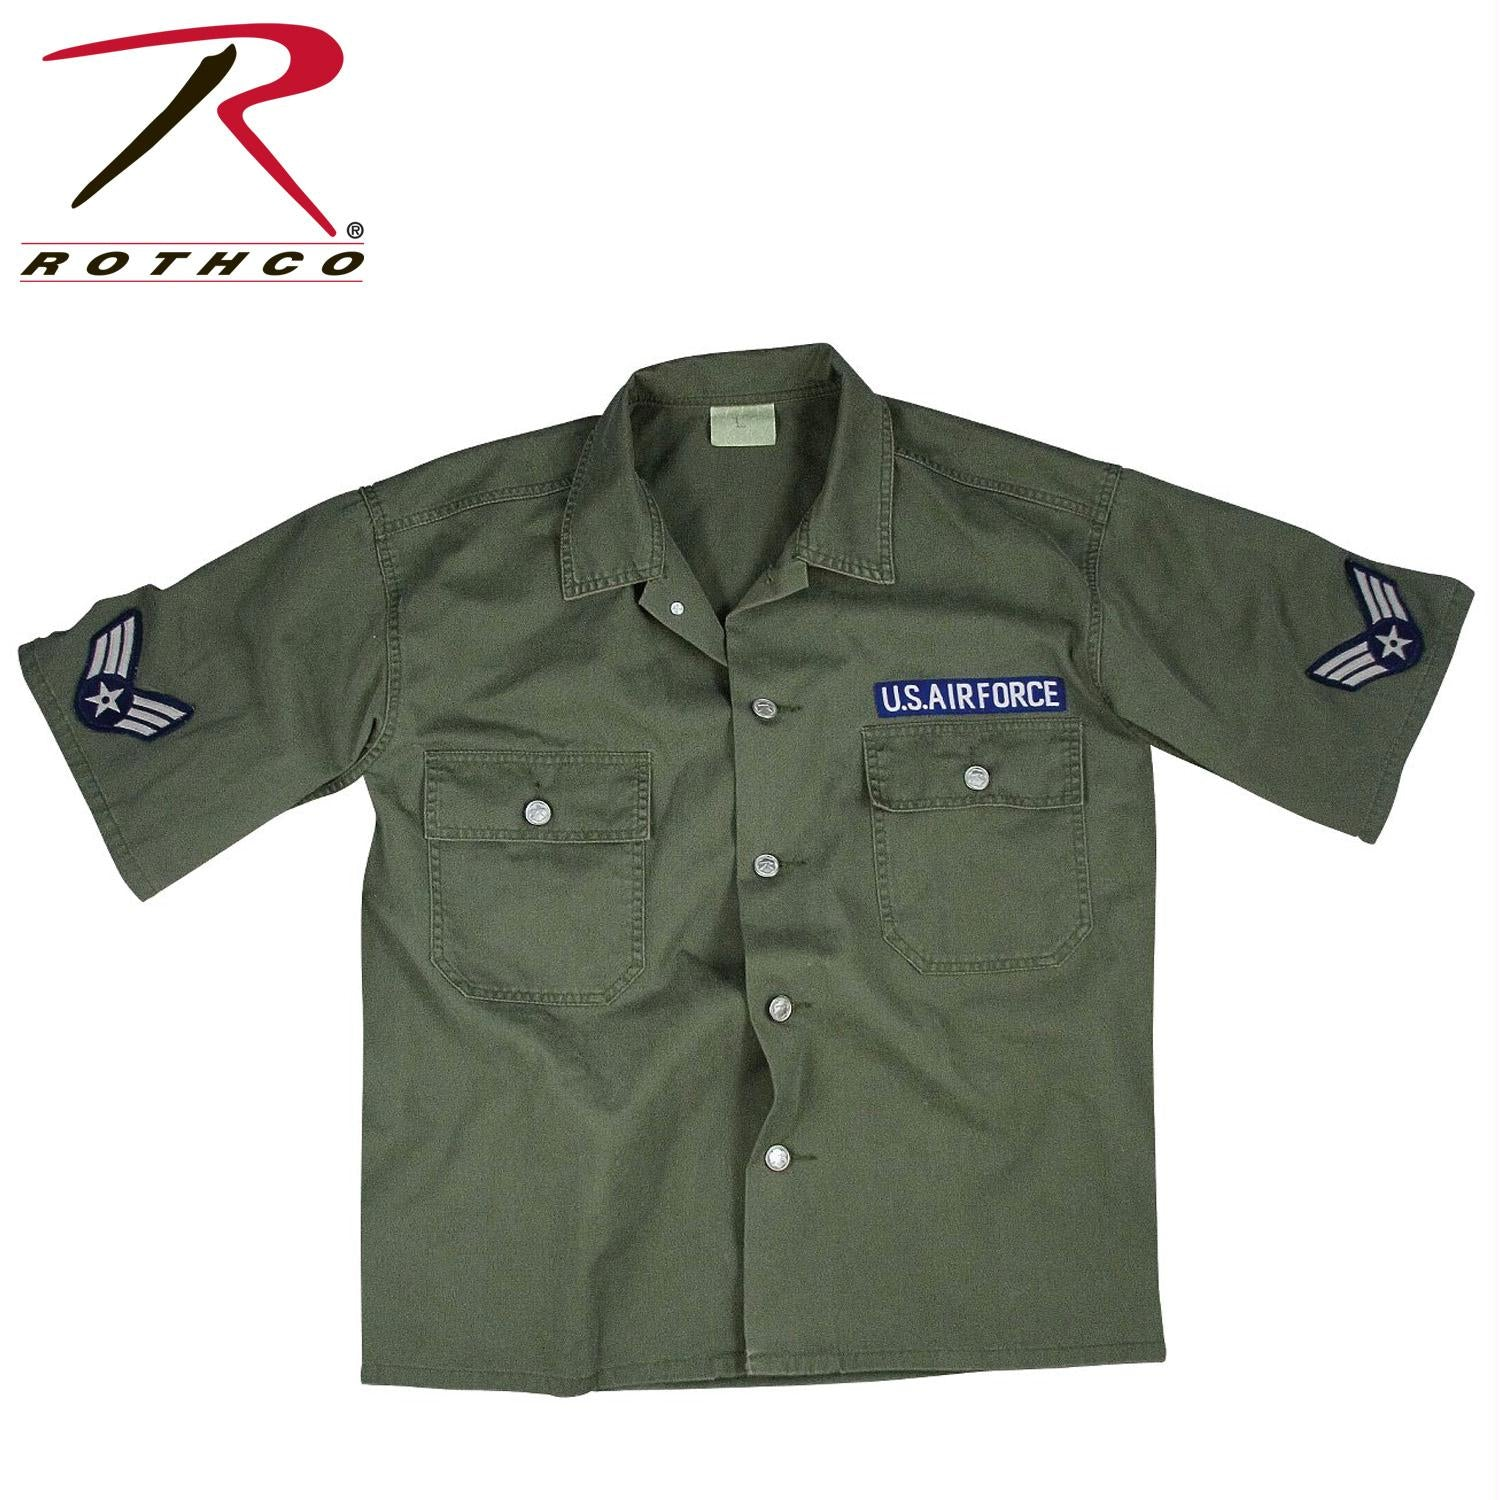 Rothco Vintage Army Air Force Short Sleeve BDU Shirt - L